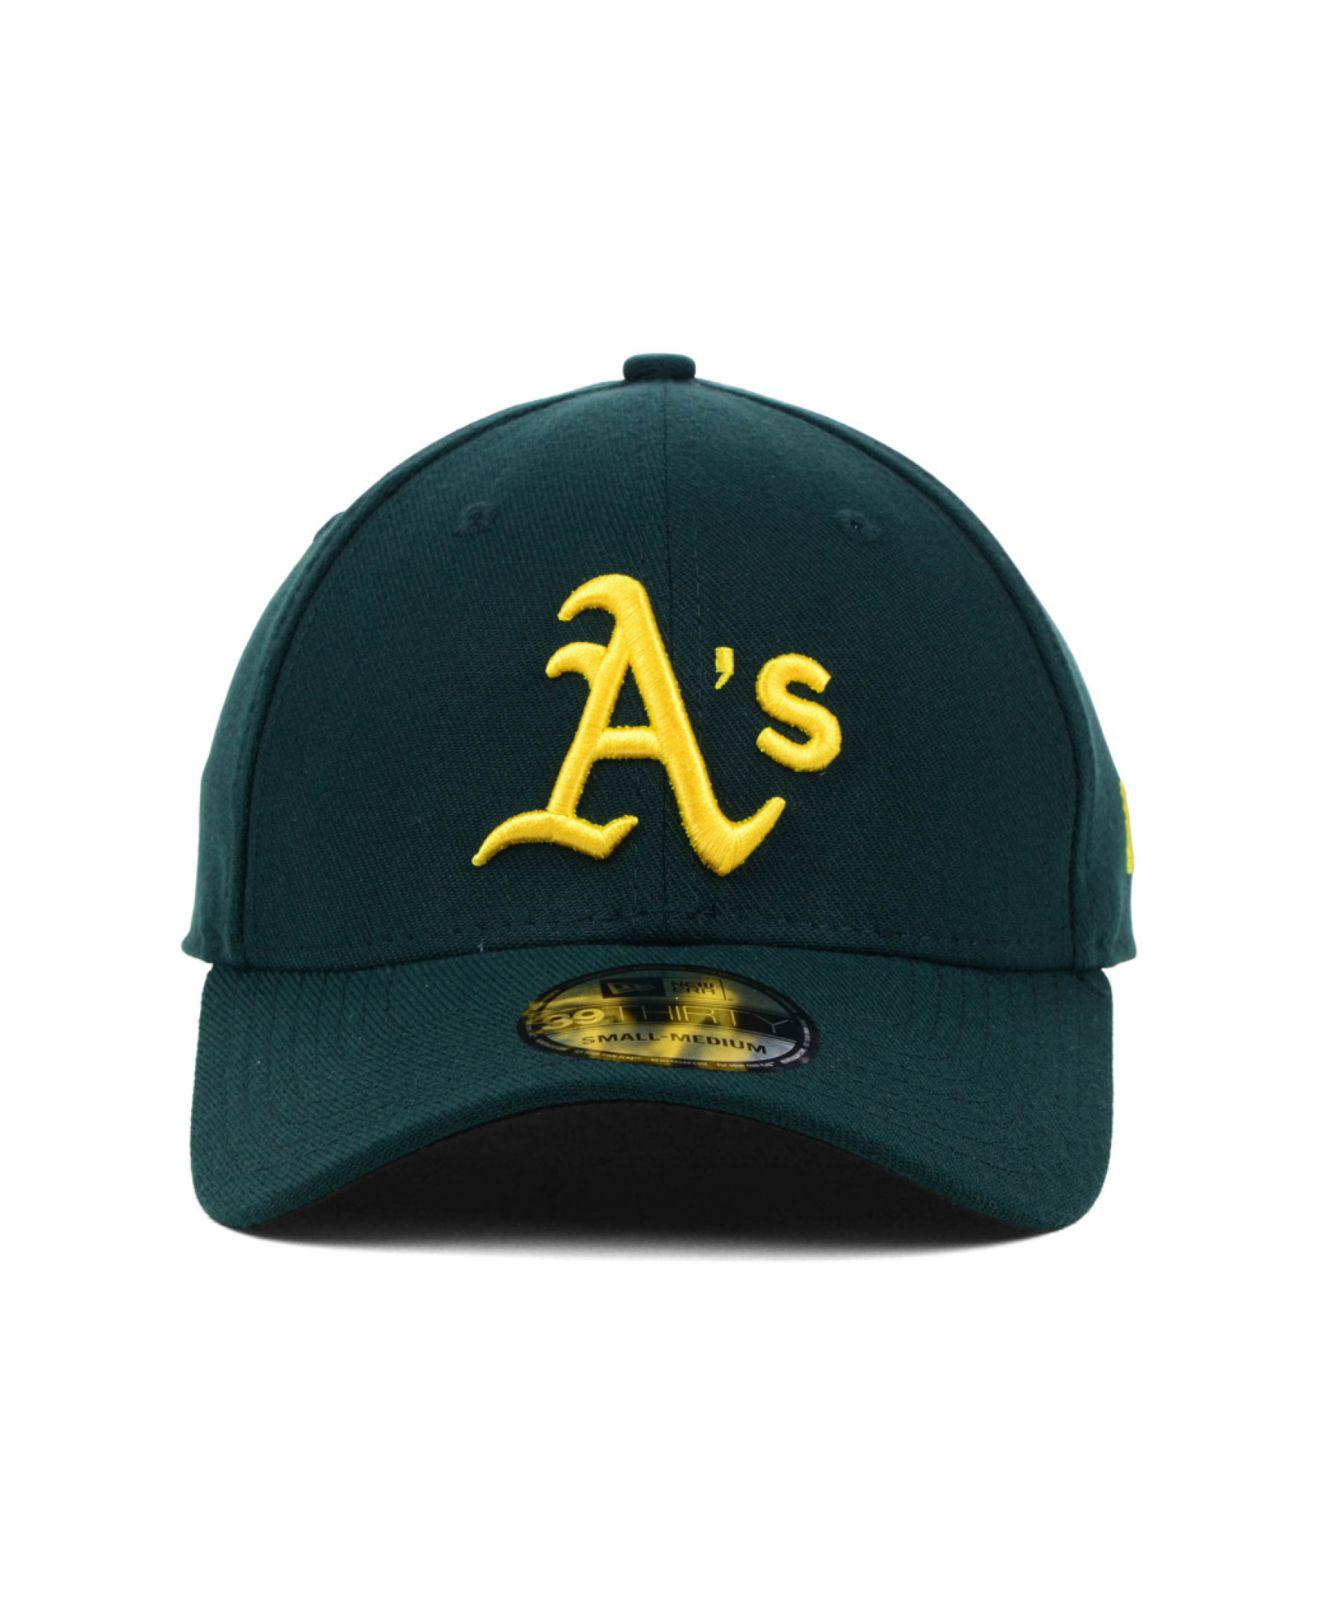 save off f3899 ae6d7 ... denmark lyst ktz oakland athletics mlb team classic 39thirty cap in  green for men 70b75 57f72